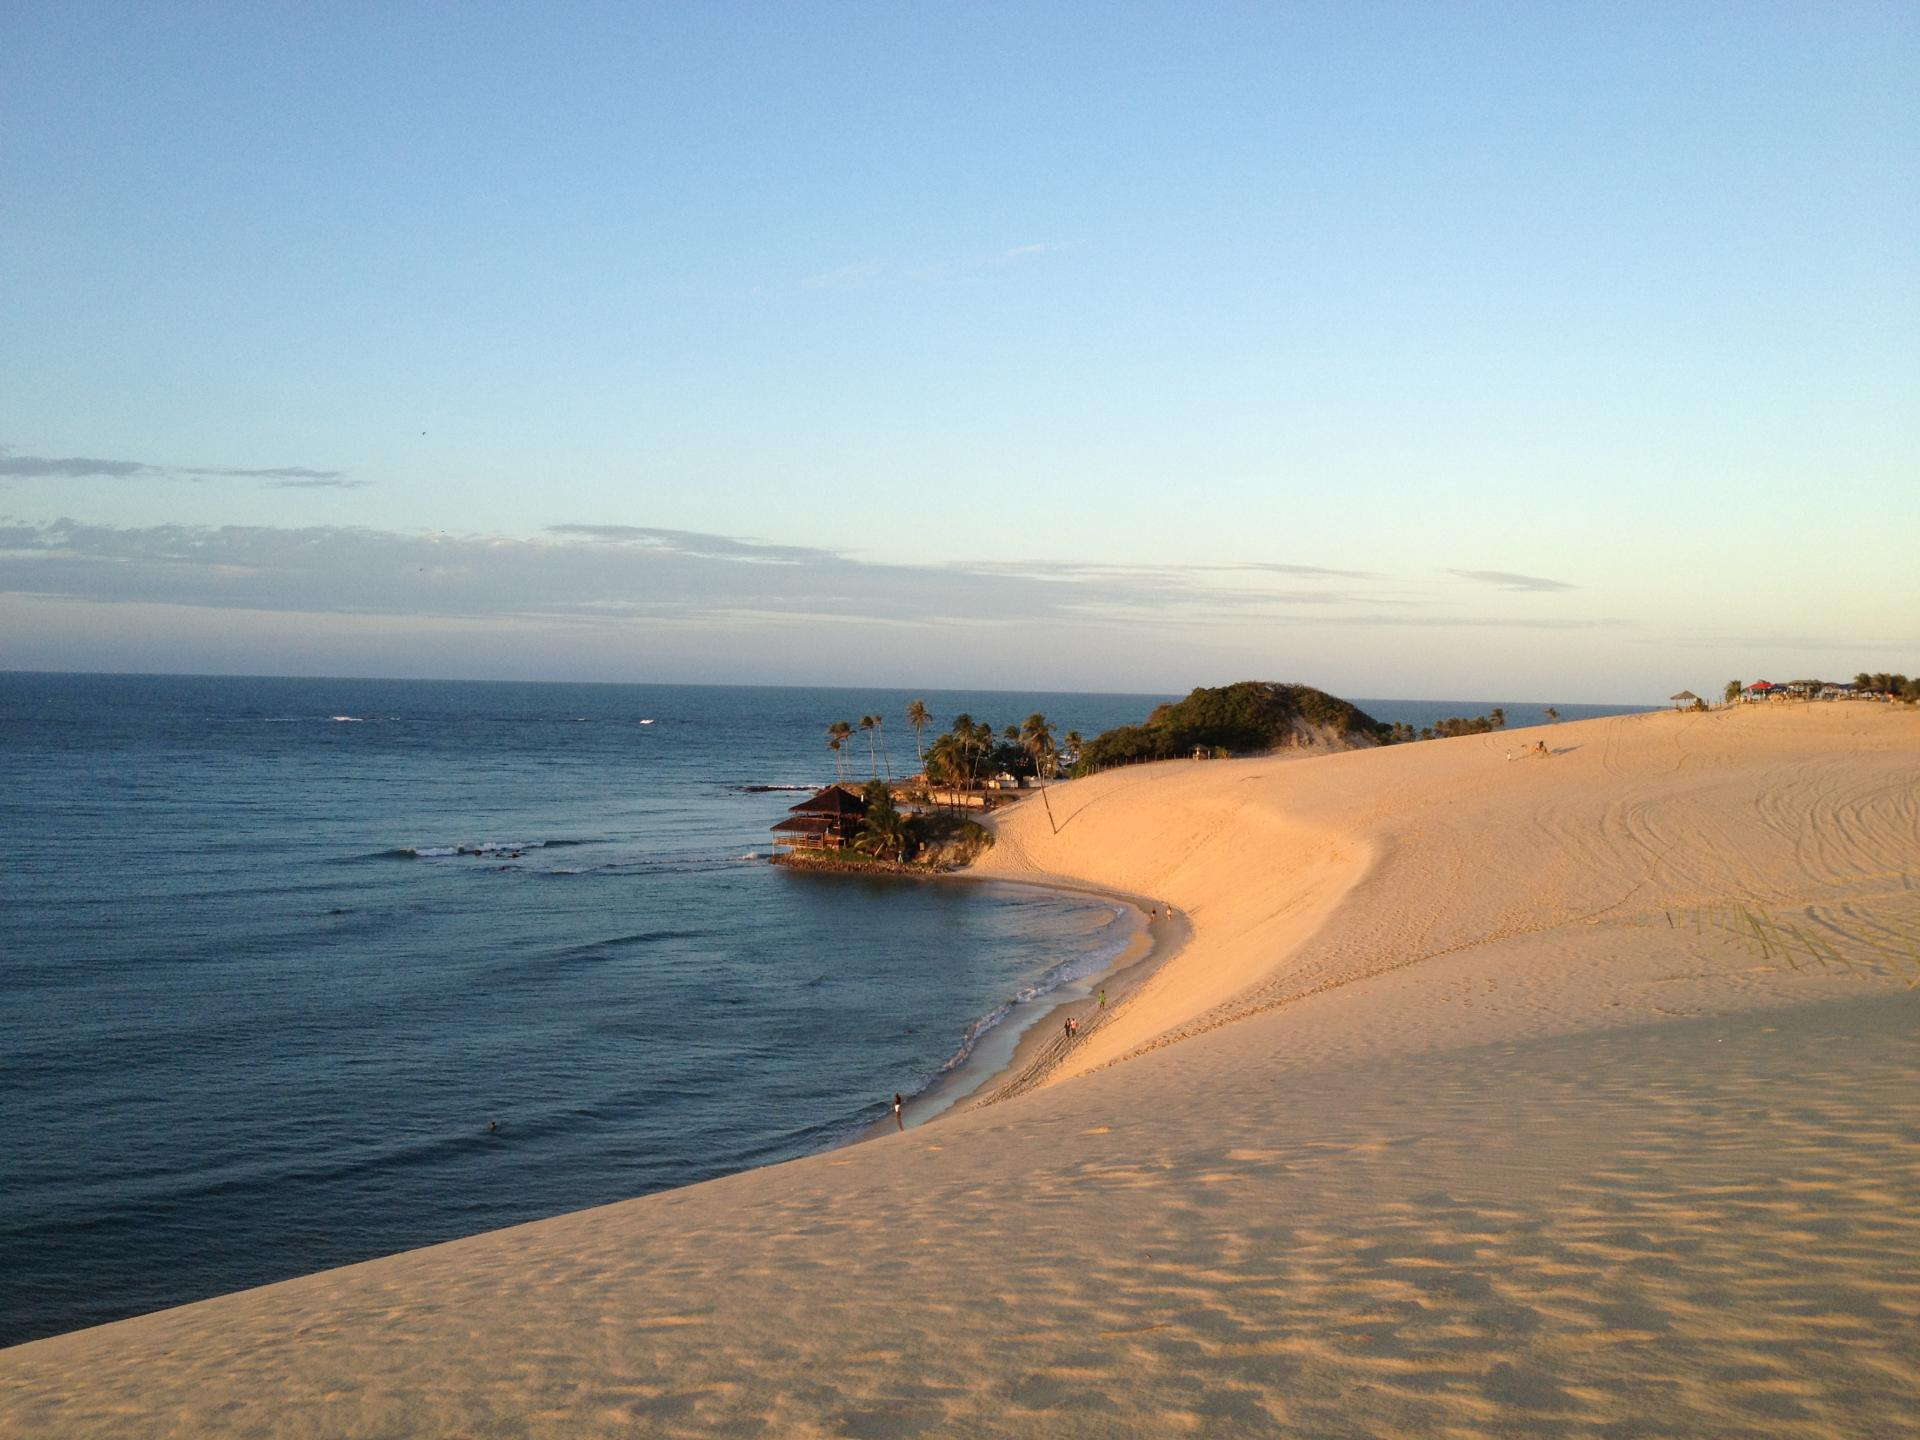 Sea view from a dune in Natal